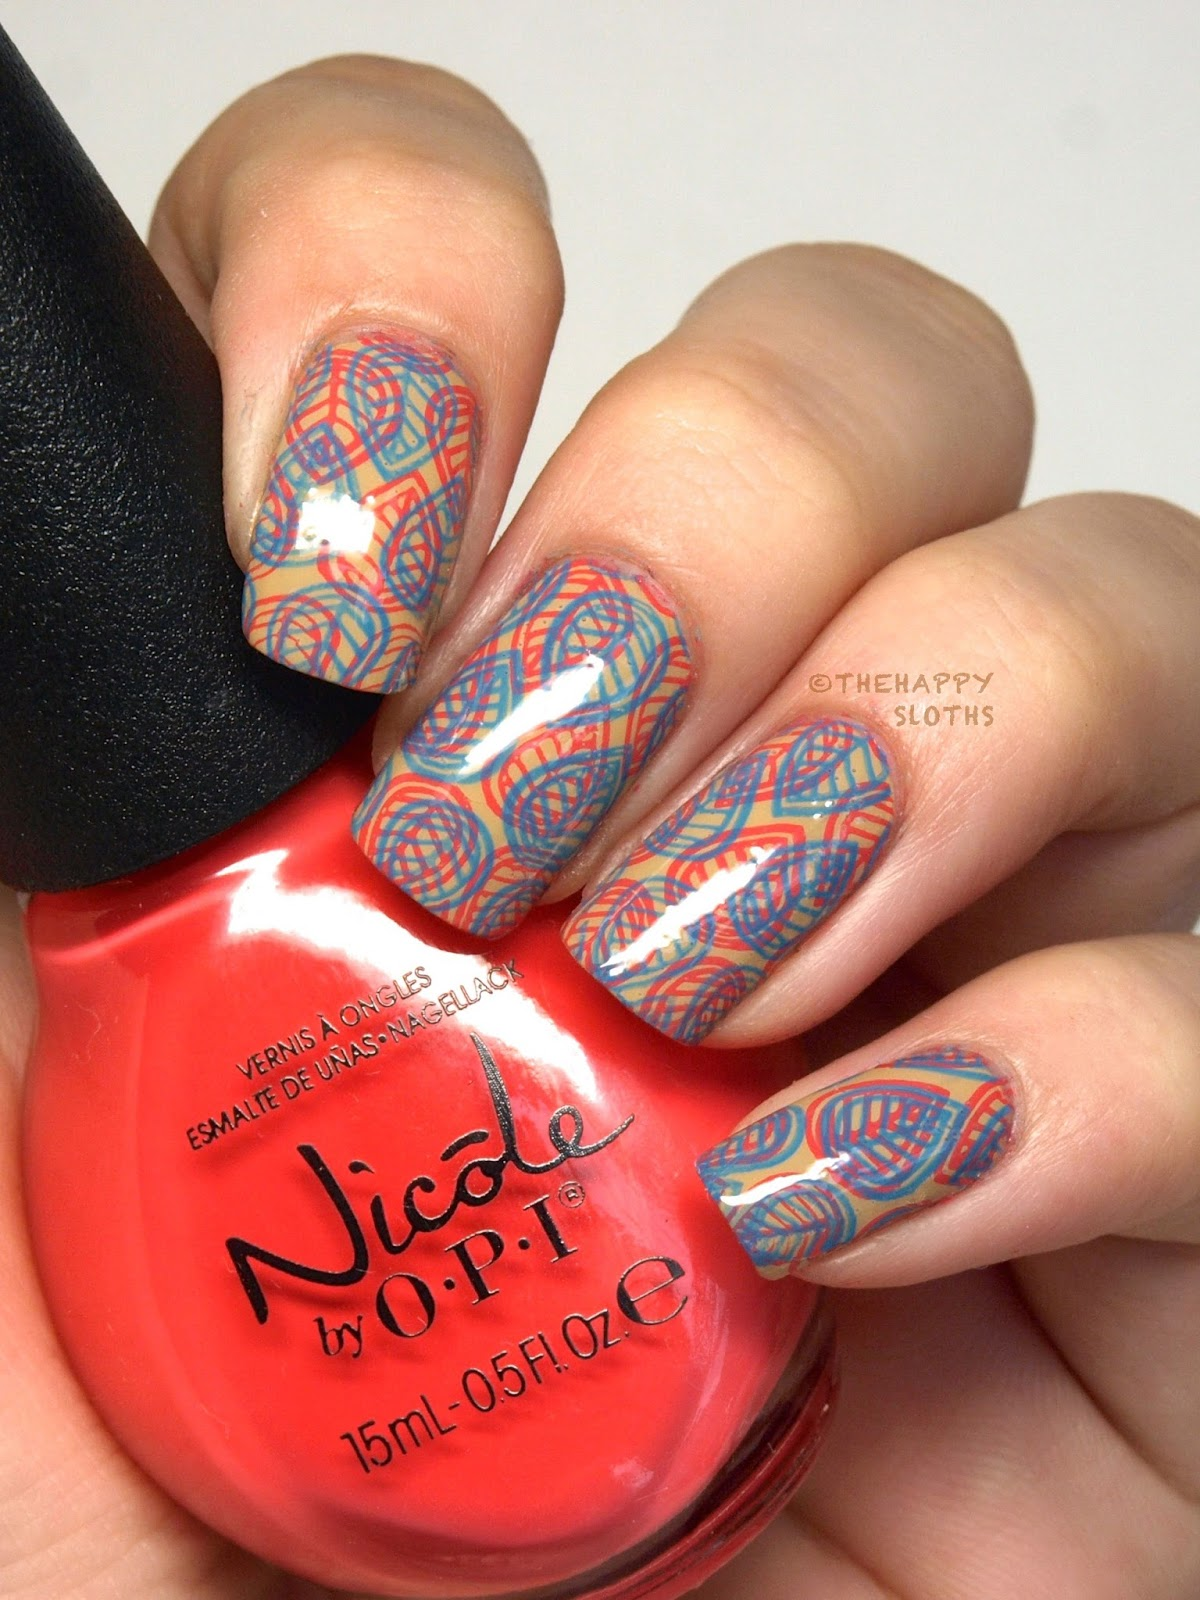 Neon On Nude Double Stamping Nail Art Design The Happy Sloths